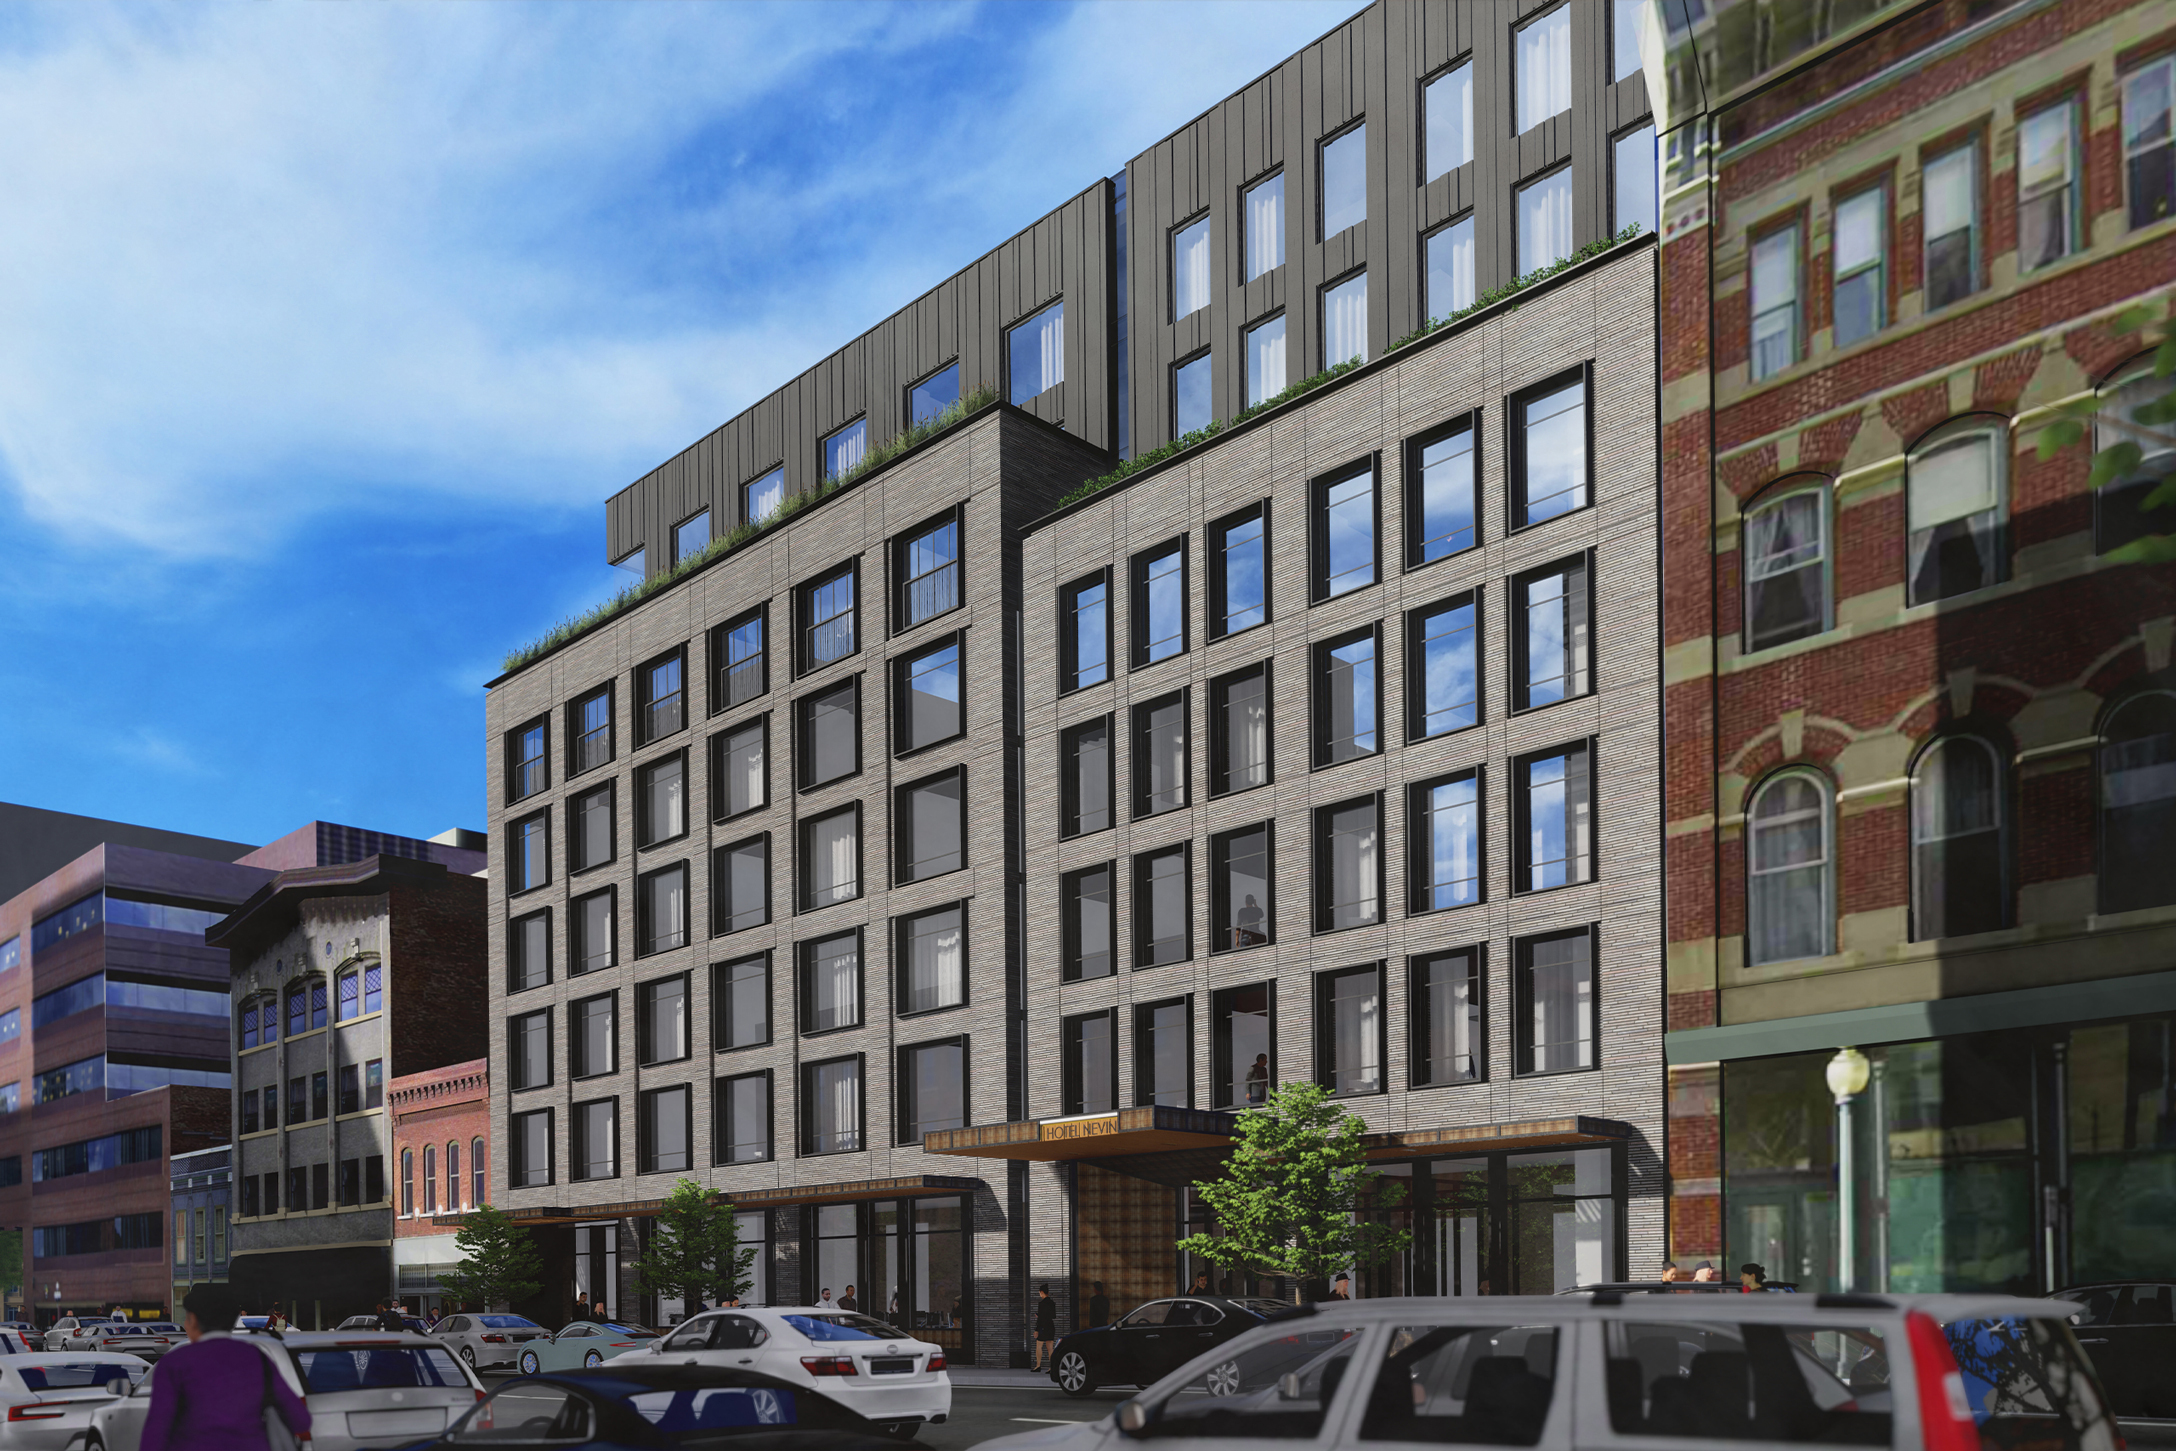 Blake Street Hotel Rendering Entry Overall Perspective